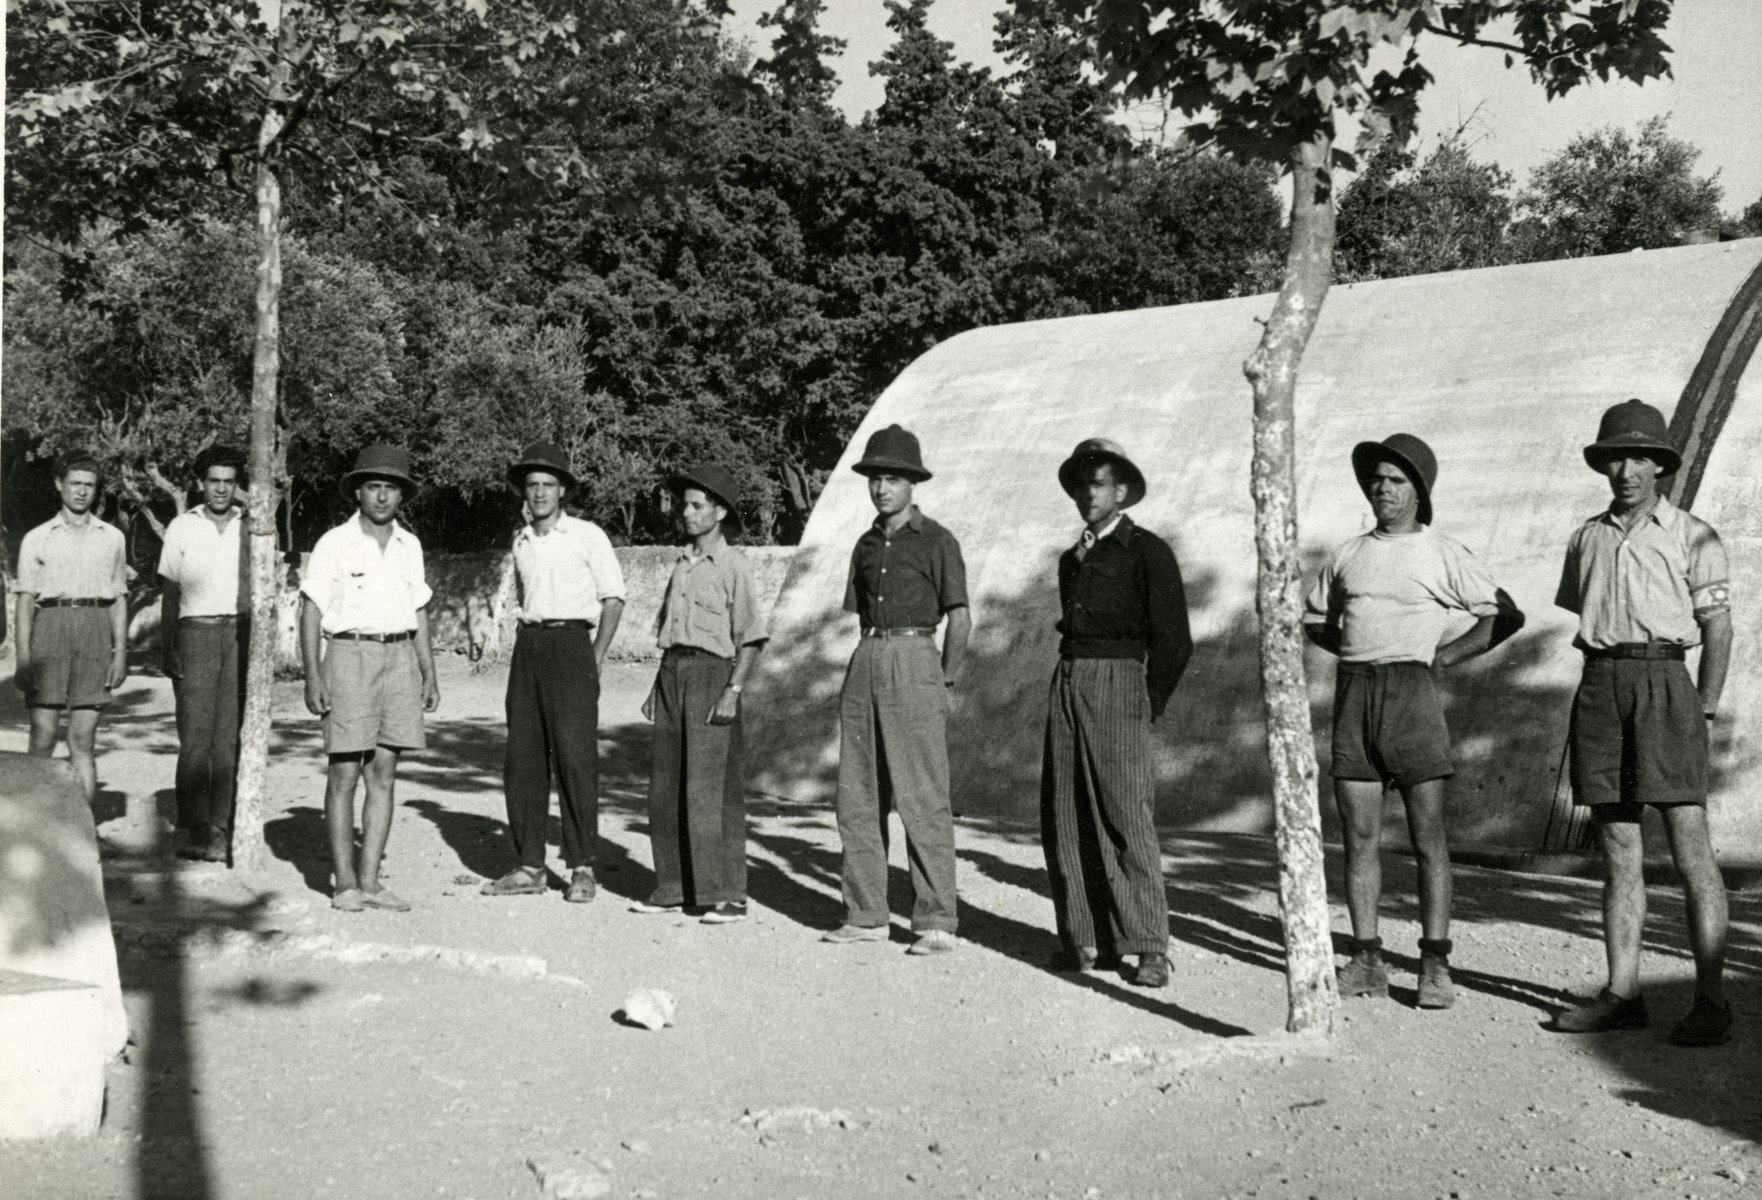 The training police gather for a roll call in Mahane David, an immigration camp for North African Jews en route to Israel.